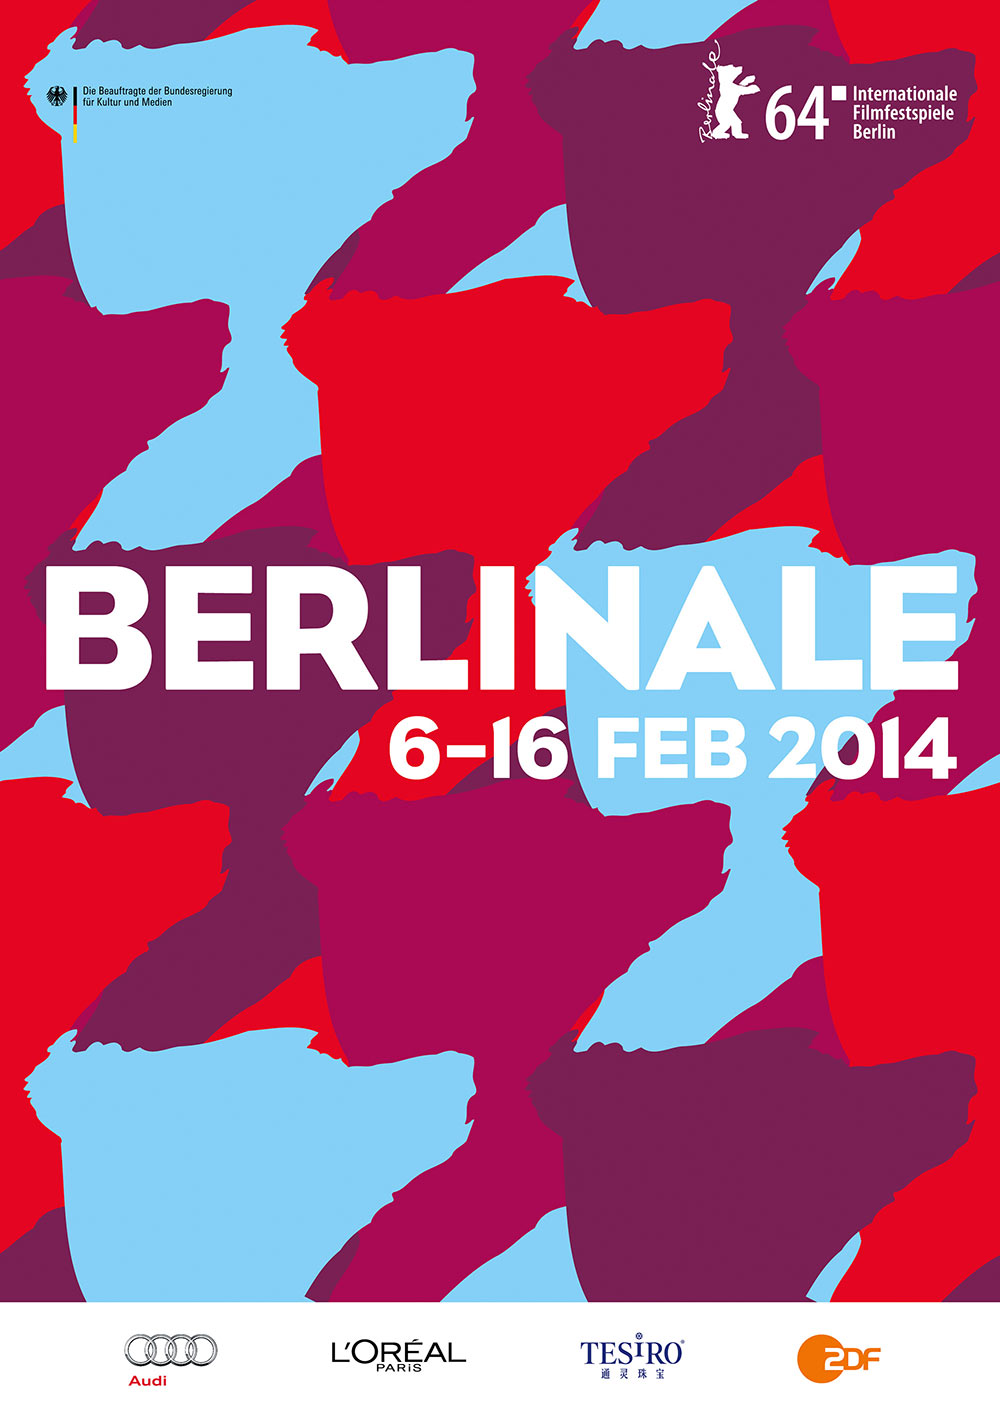 Das amtliche Berlinale Plakat 2014, designed by Boros, © Berlinale